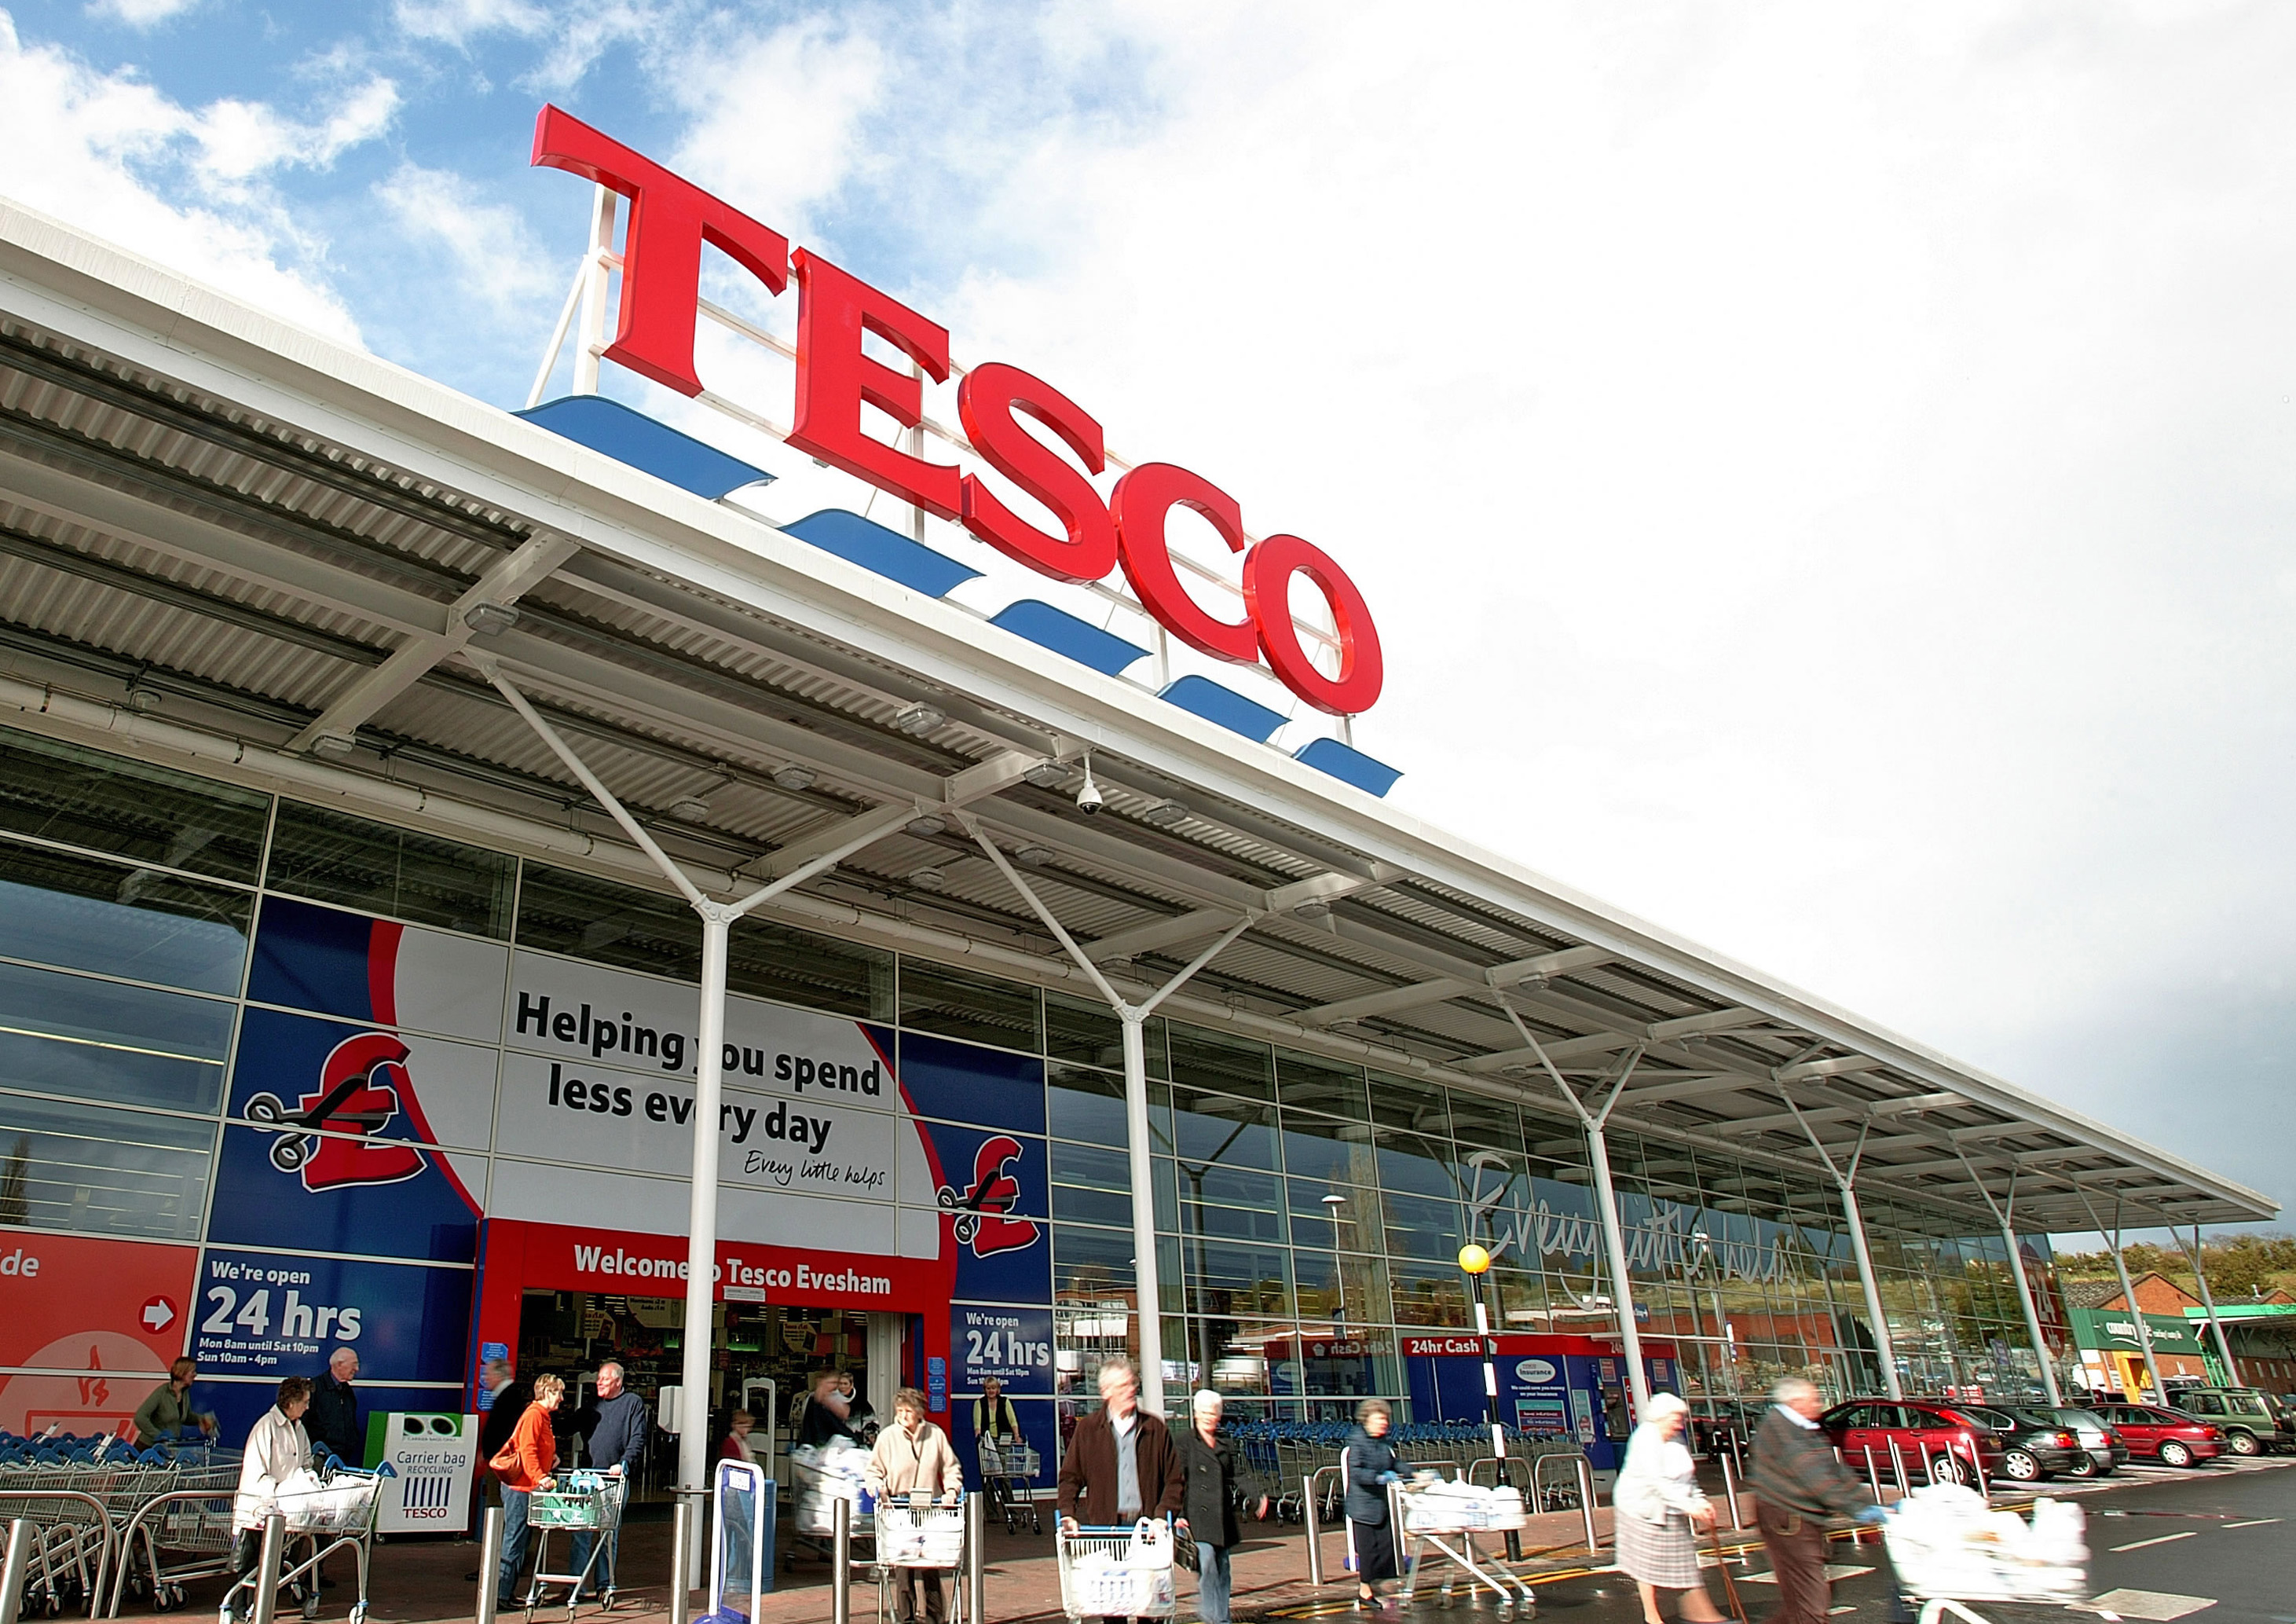 The farming industry has reacted angrily to the branding, accusing Tesco of misleading consumers